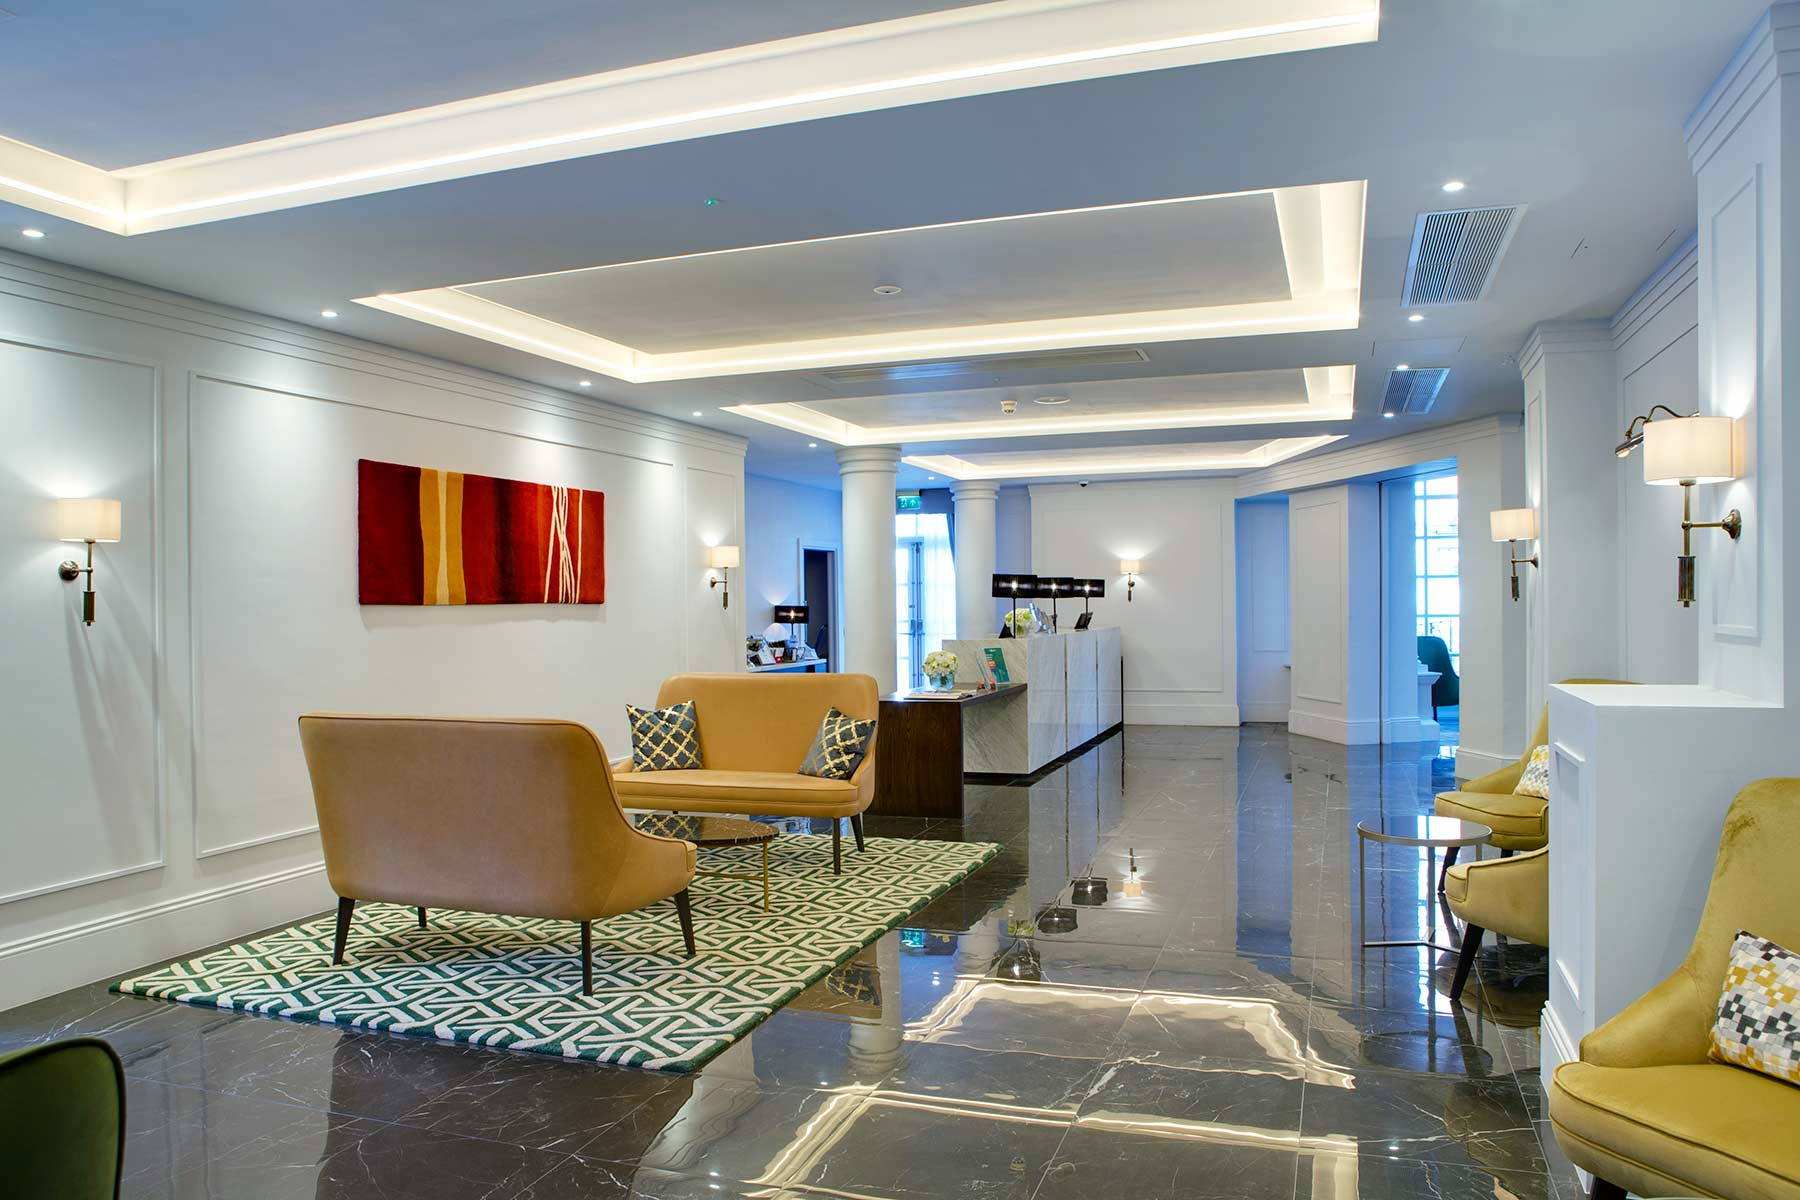 Hotel reception area and lobby